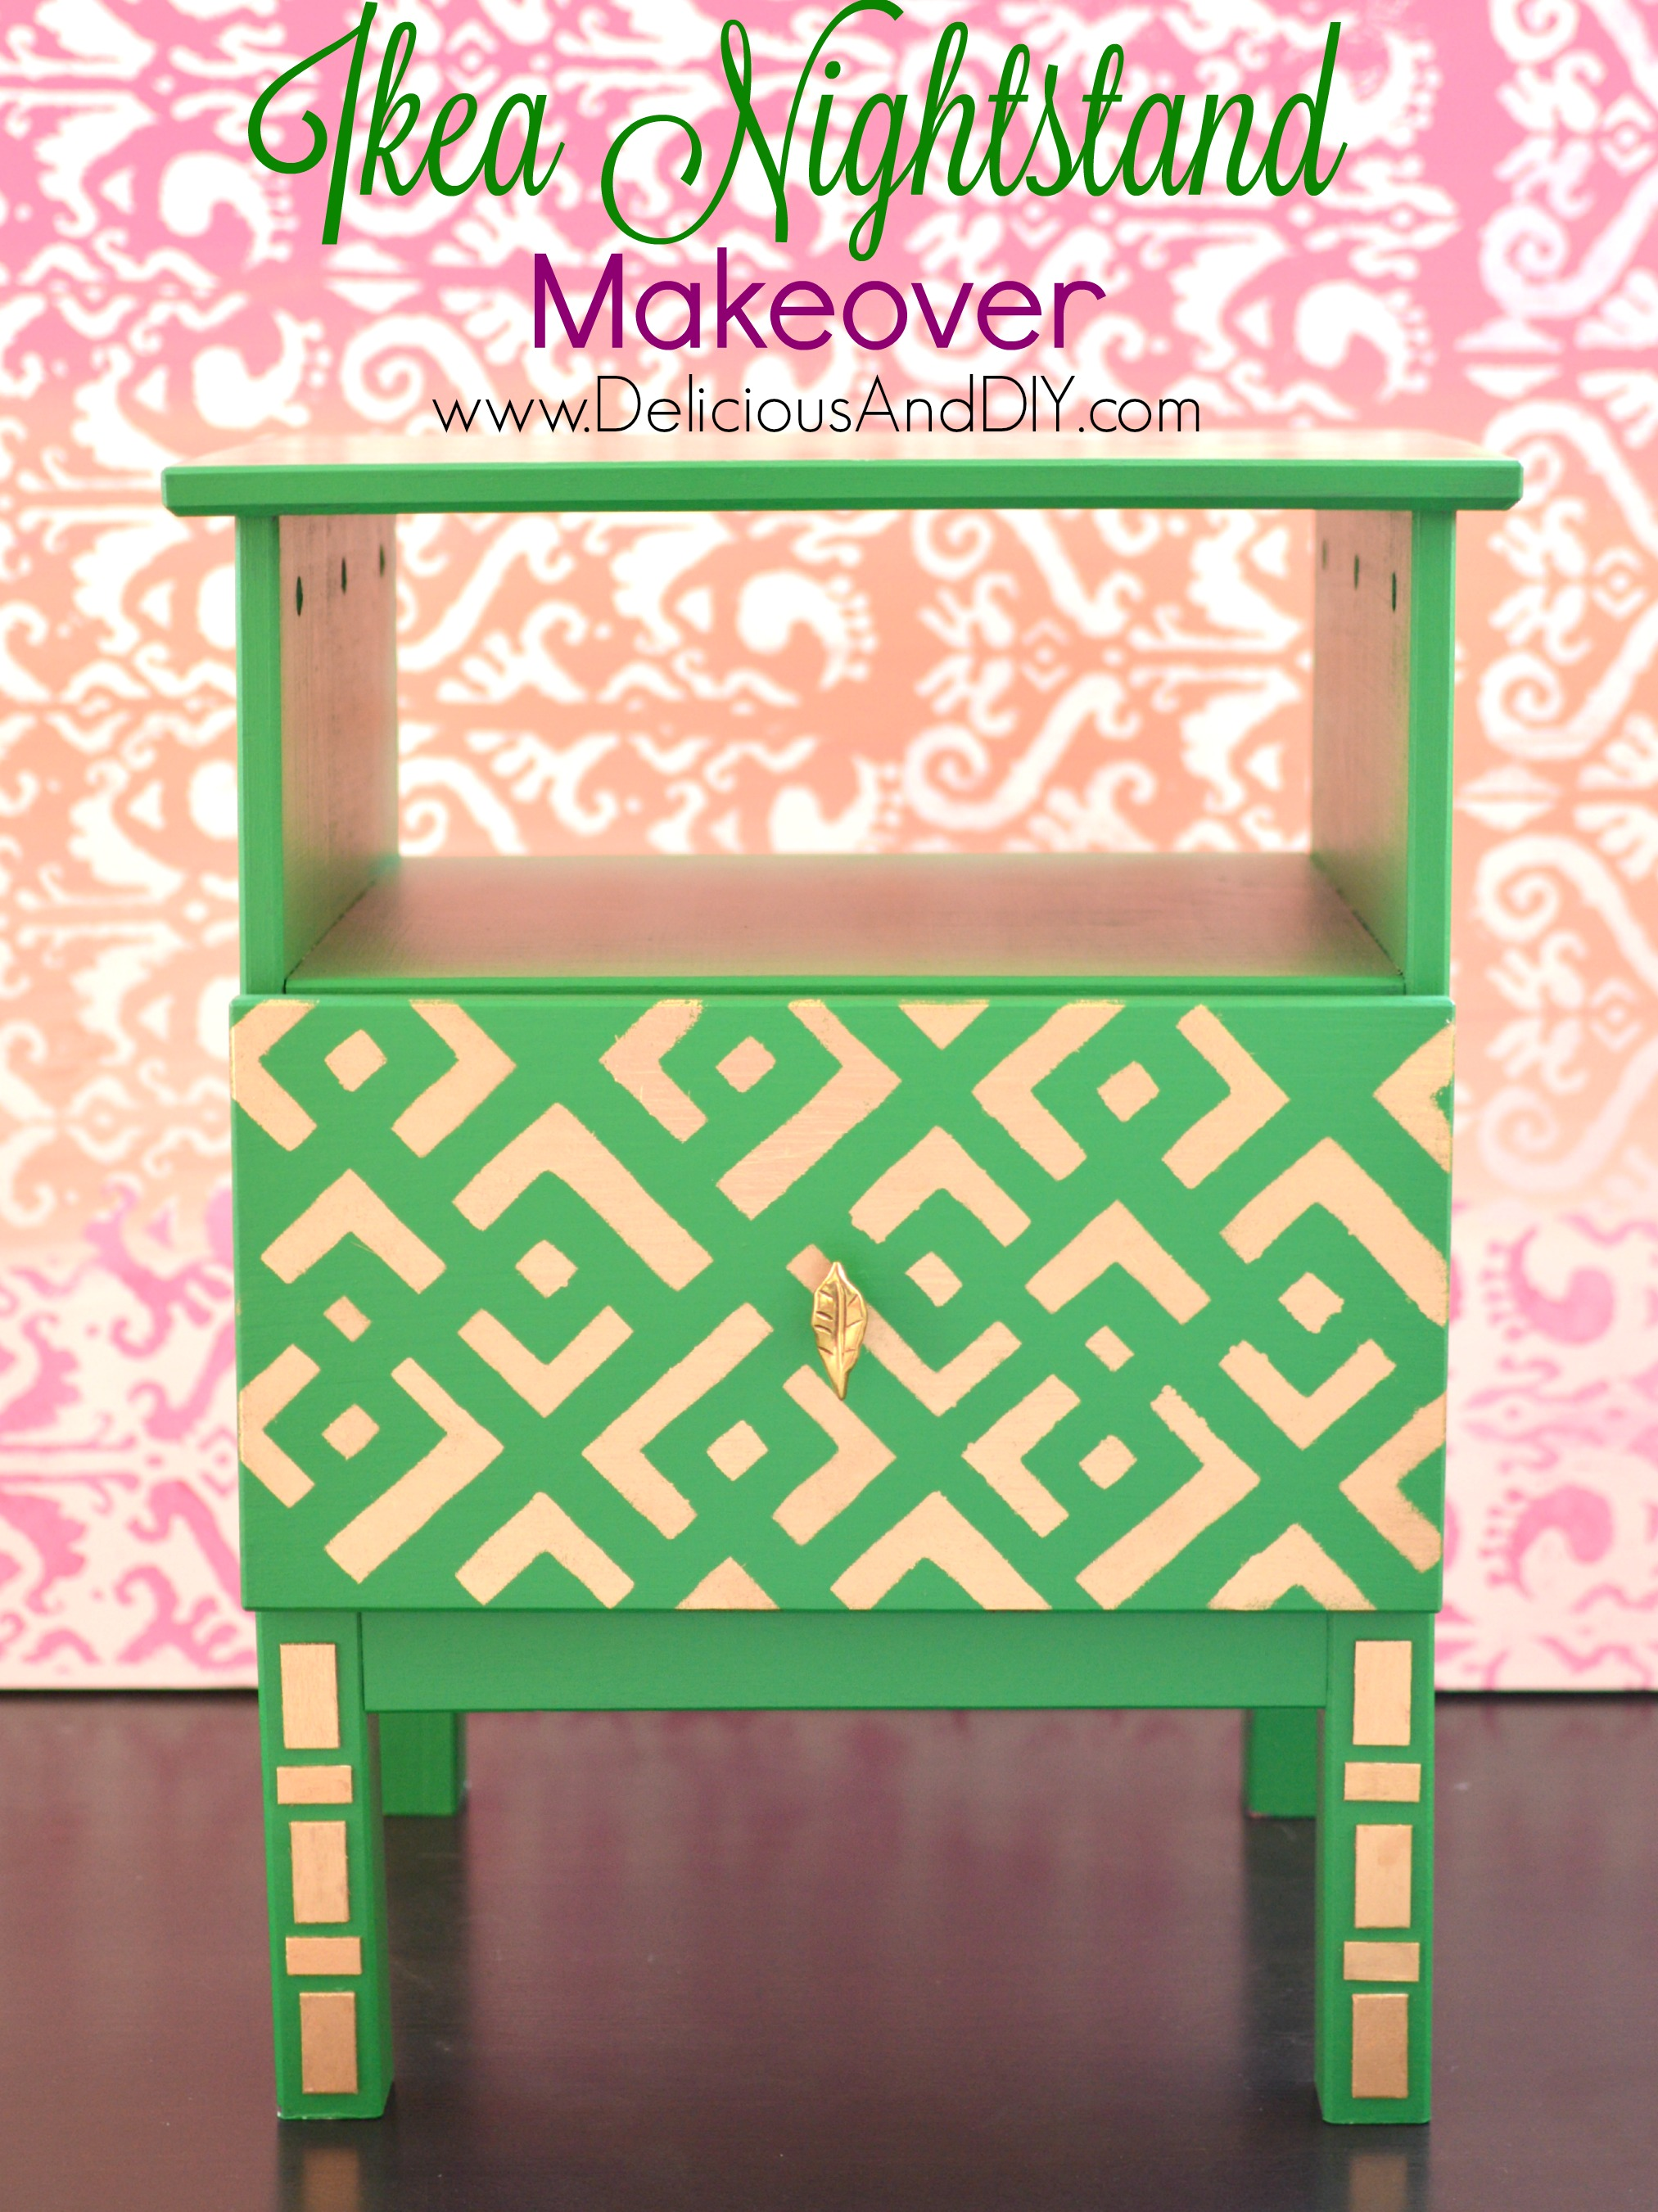 ikea nightstand makeover delicious and diy